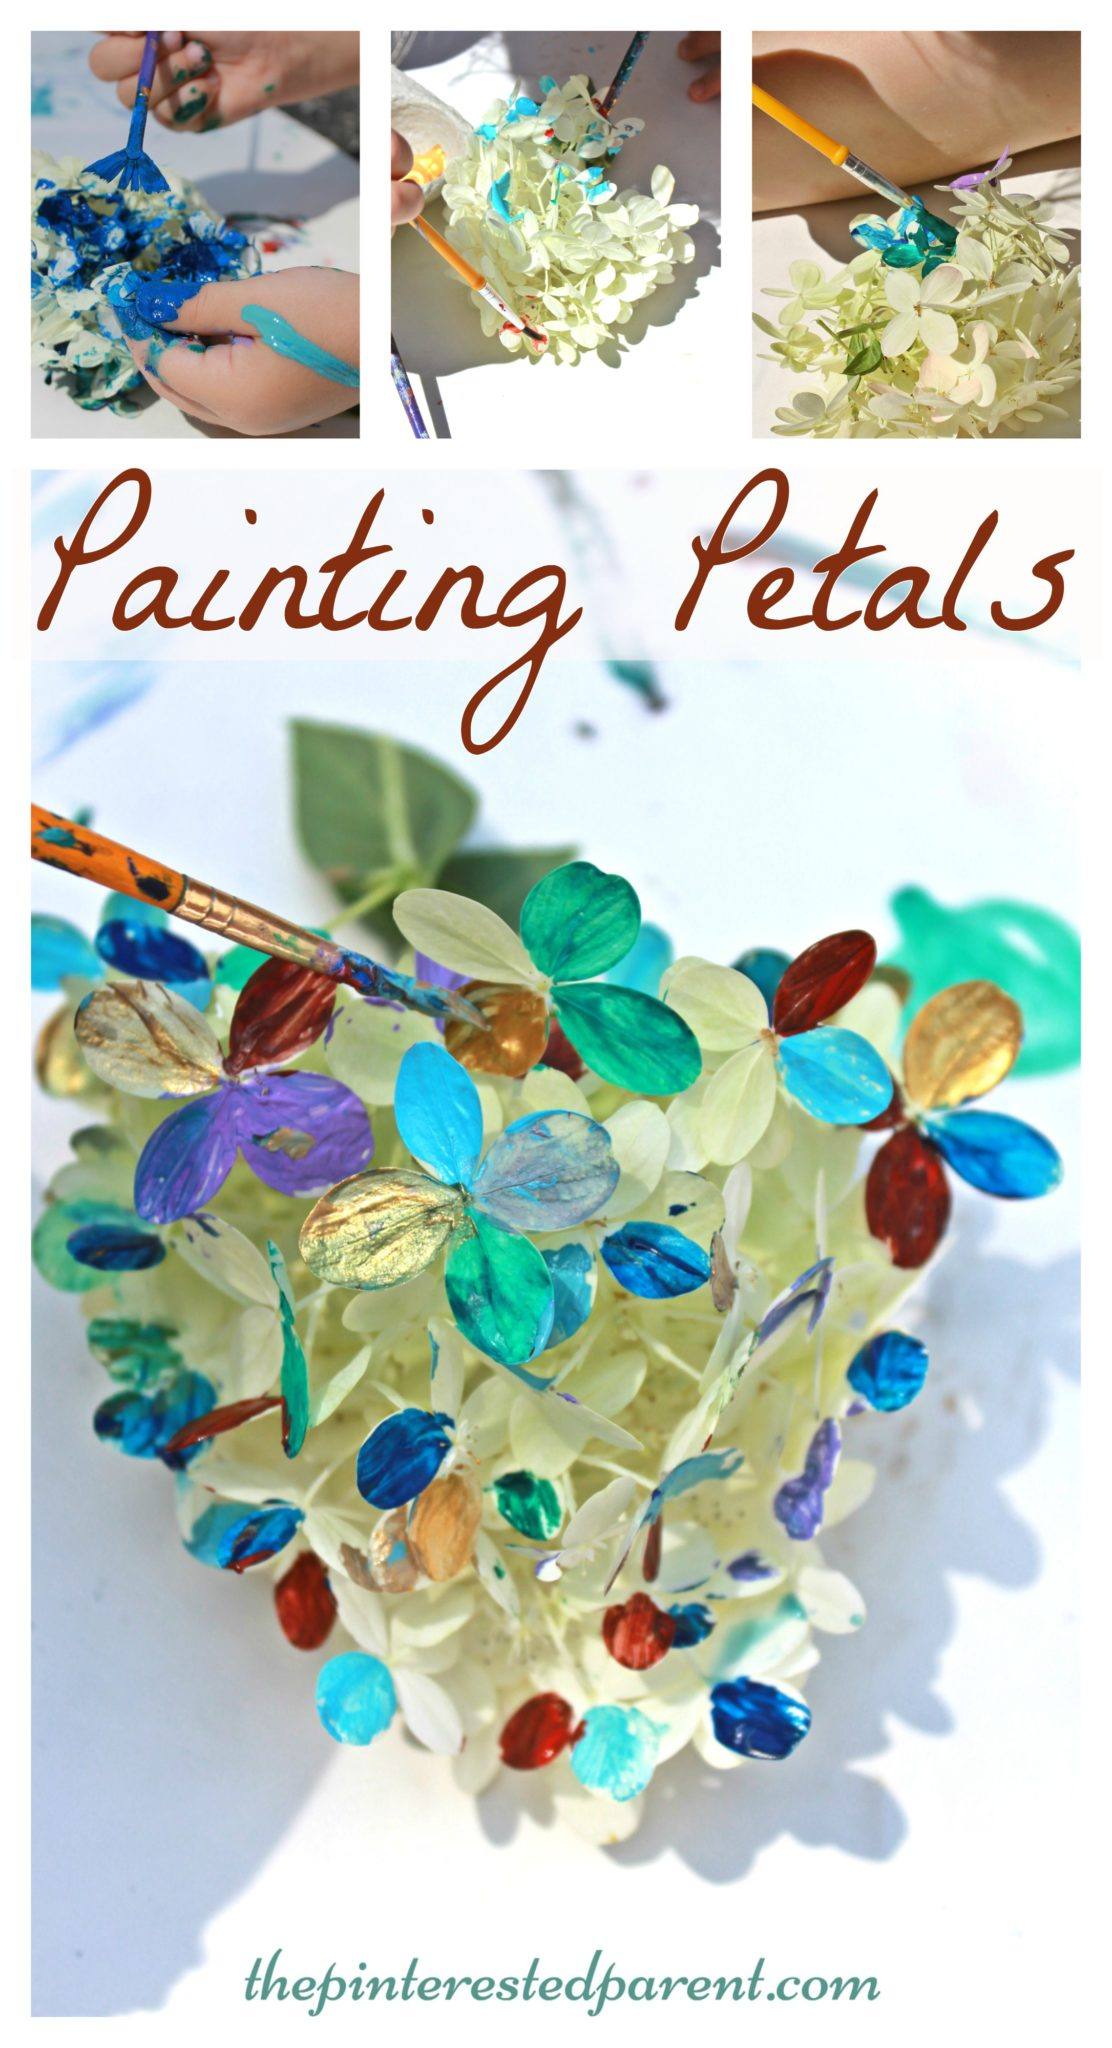 Painting Flower Petal  Nature Arts & Crafts Activities For